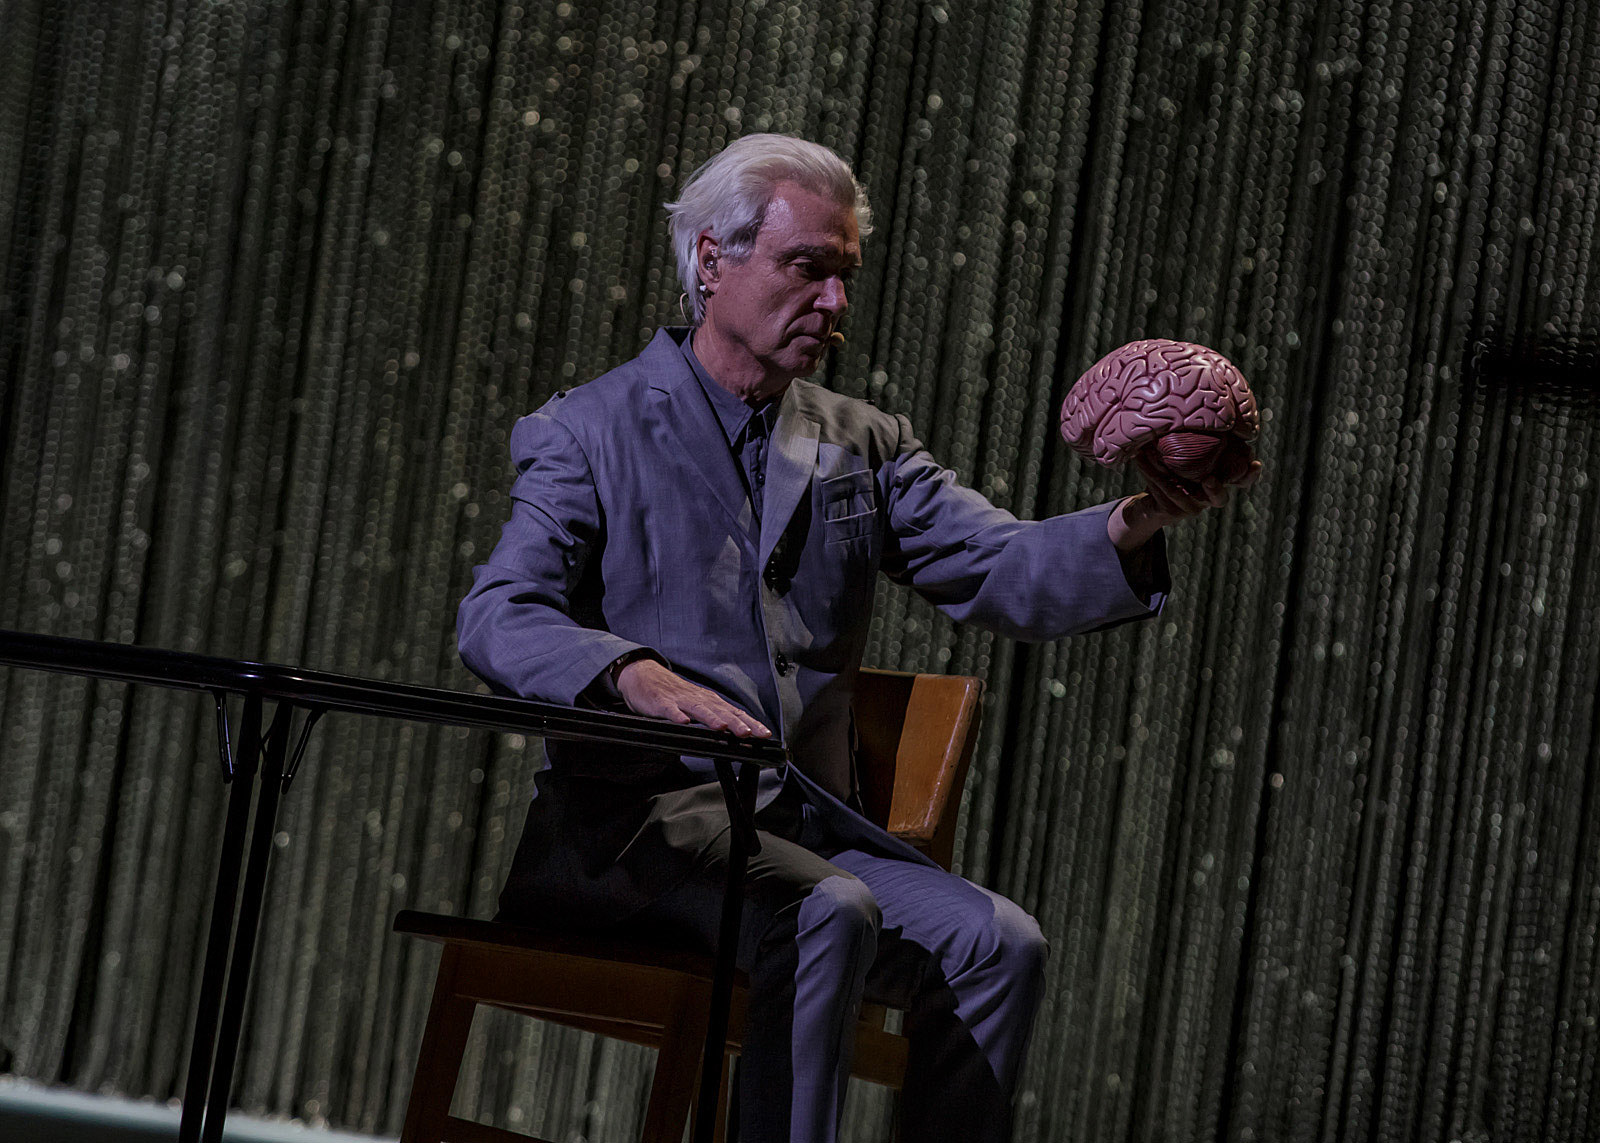 David byrne expands tour including new nyc date